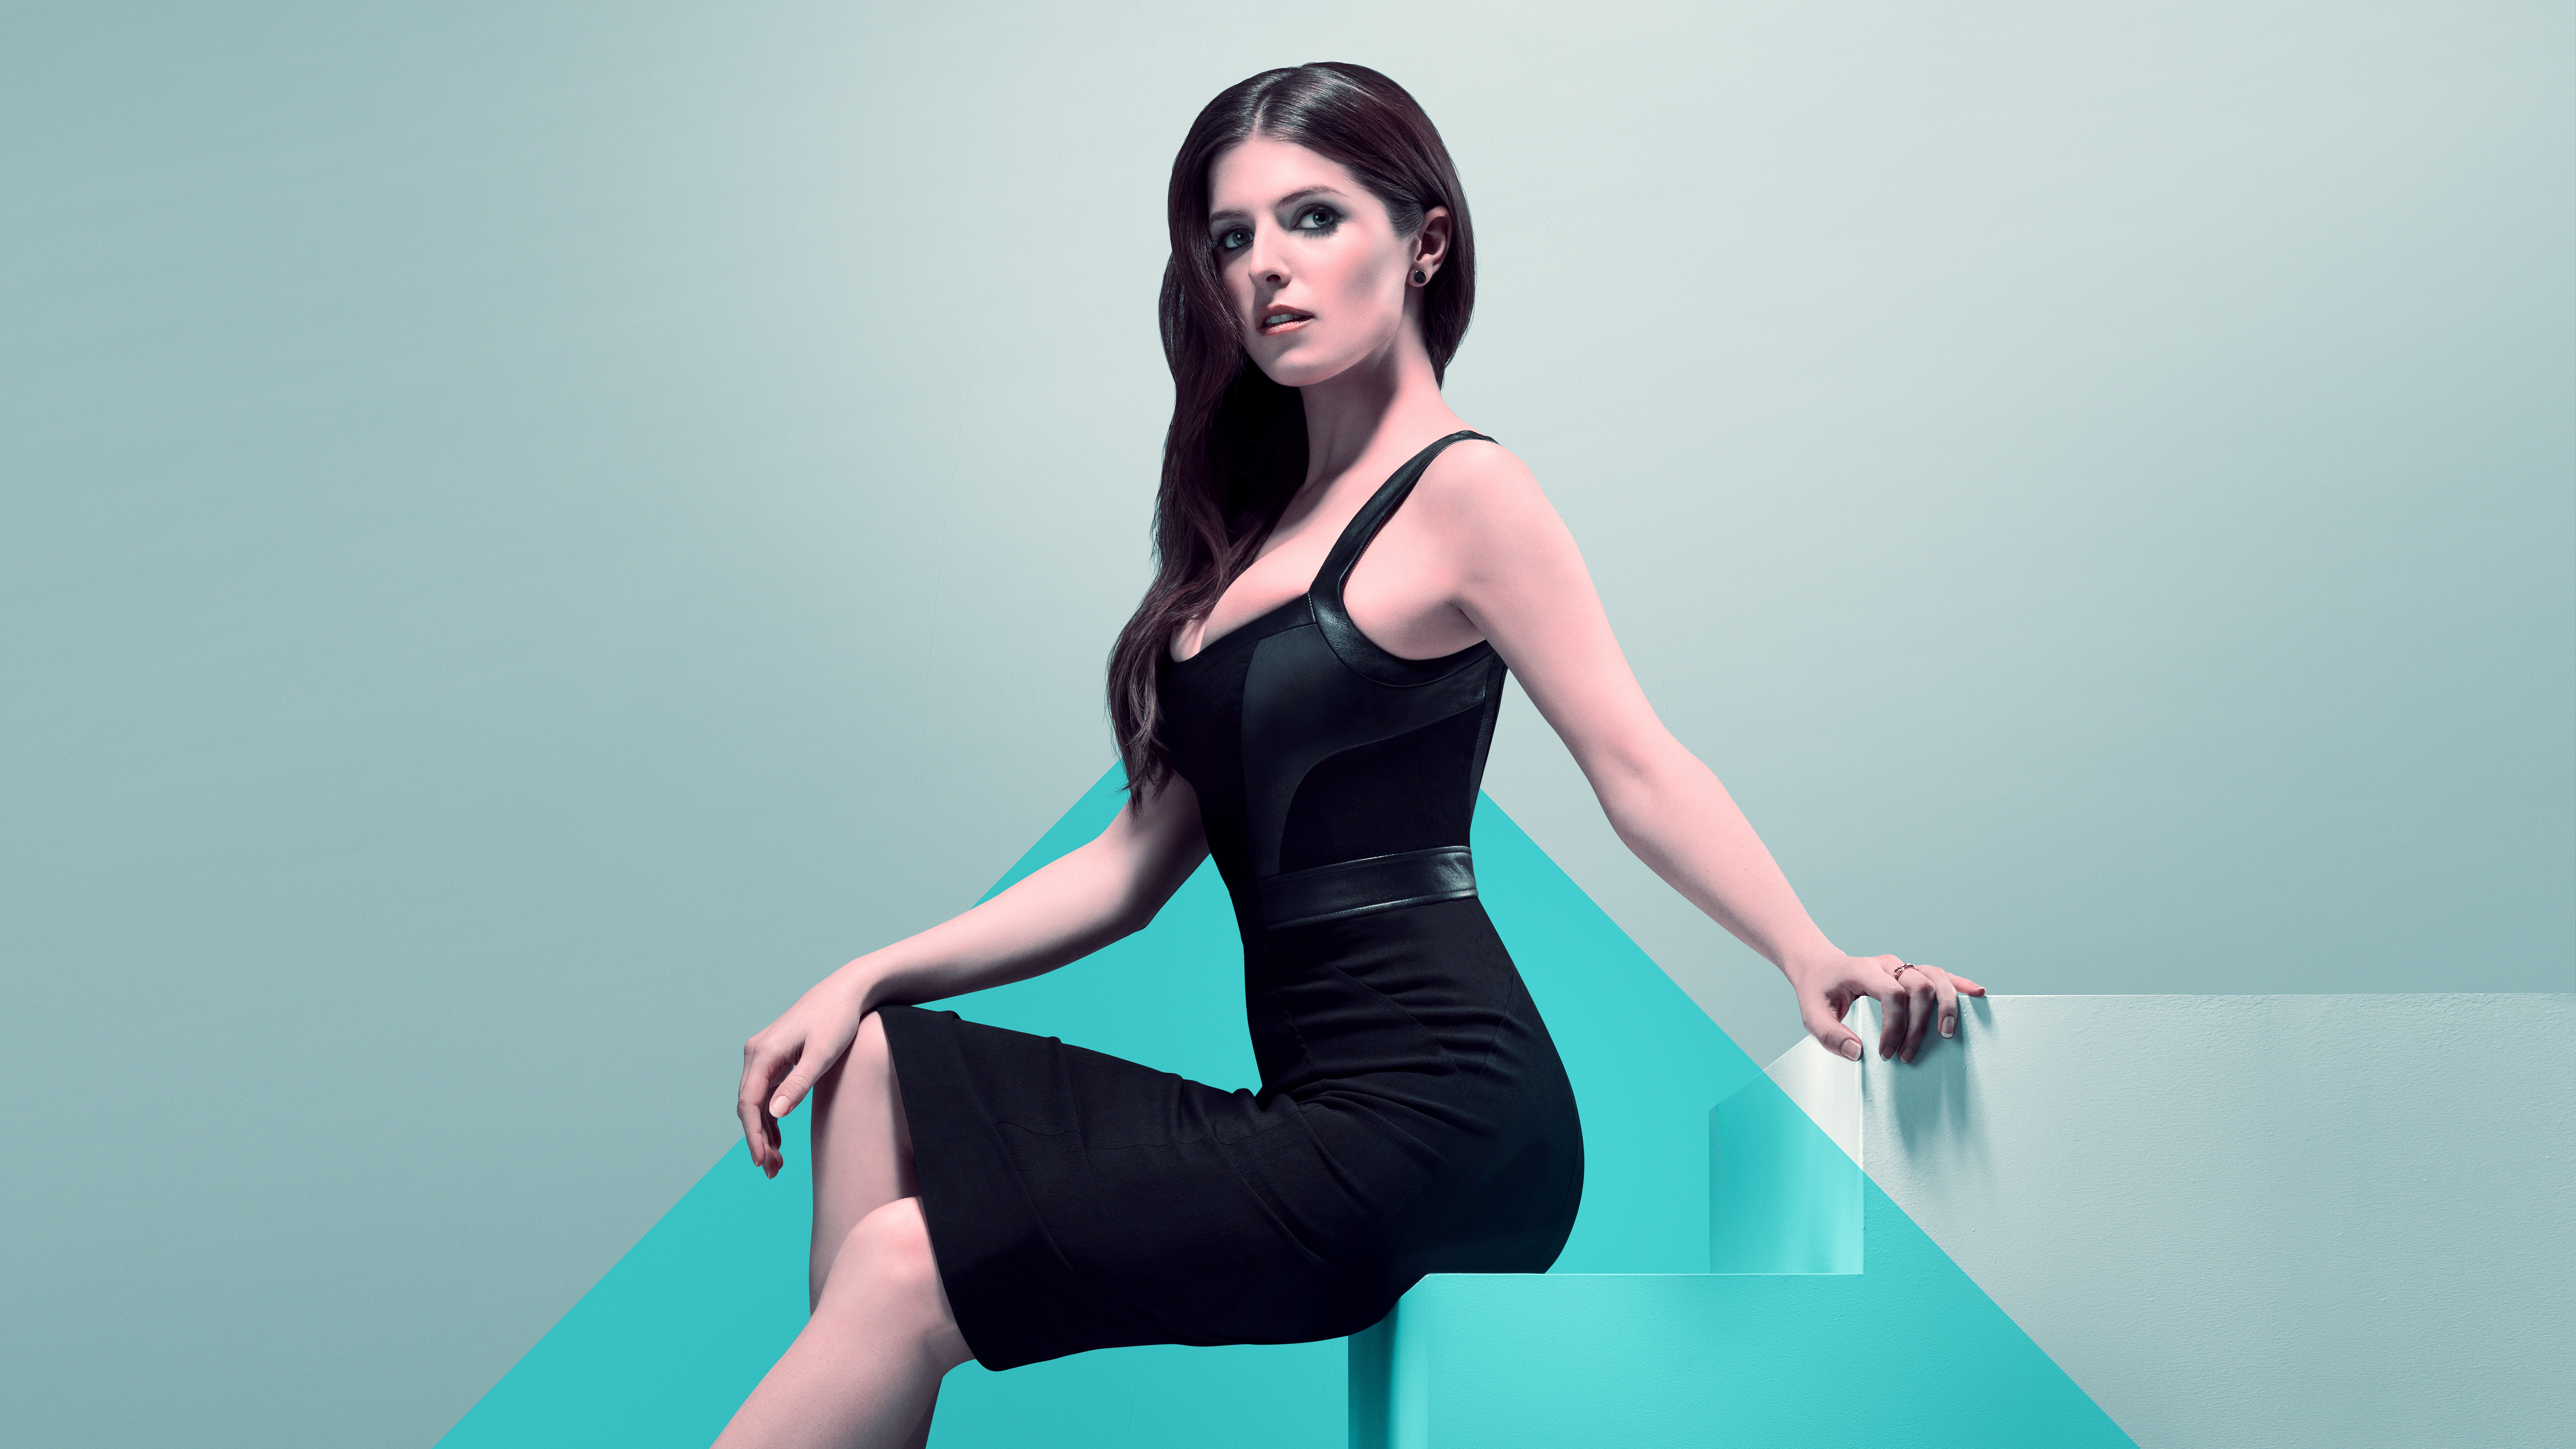 Anna Kendrick In A Simple Favor 4k 8k Wallpapers Hd Wallpapers